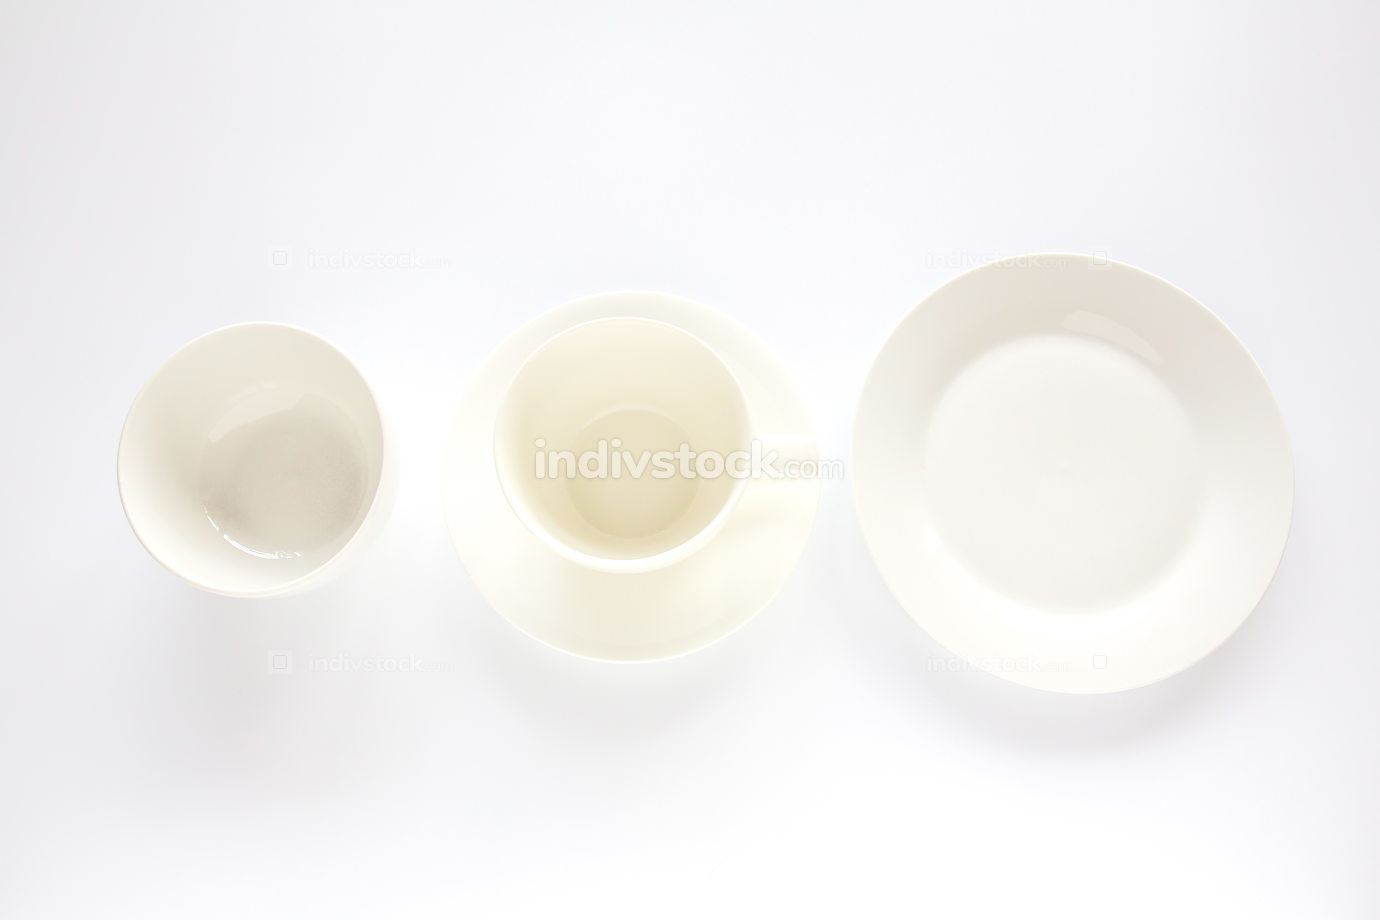 Empty white plate,white cup and white bowl on white background